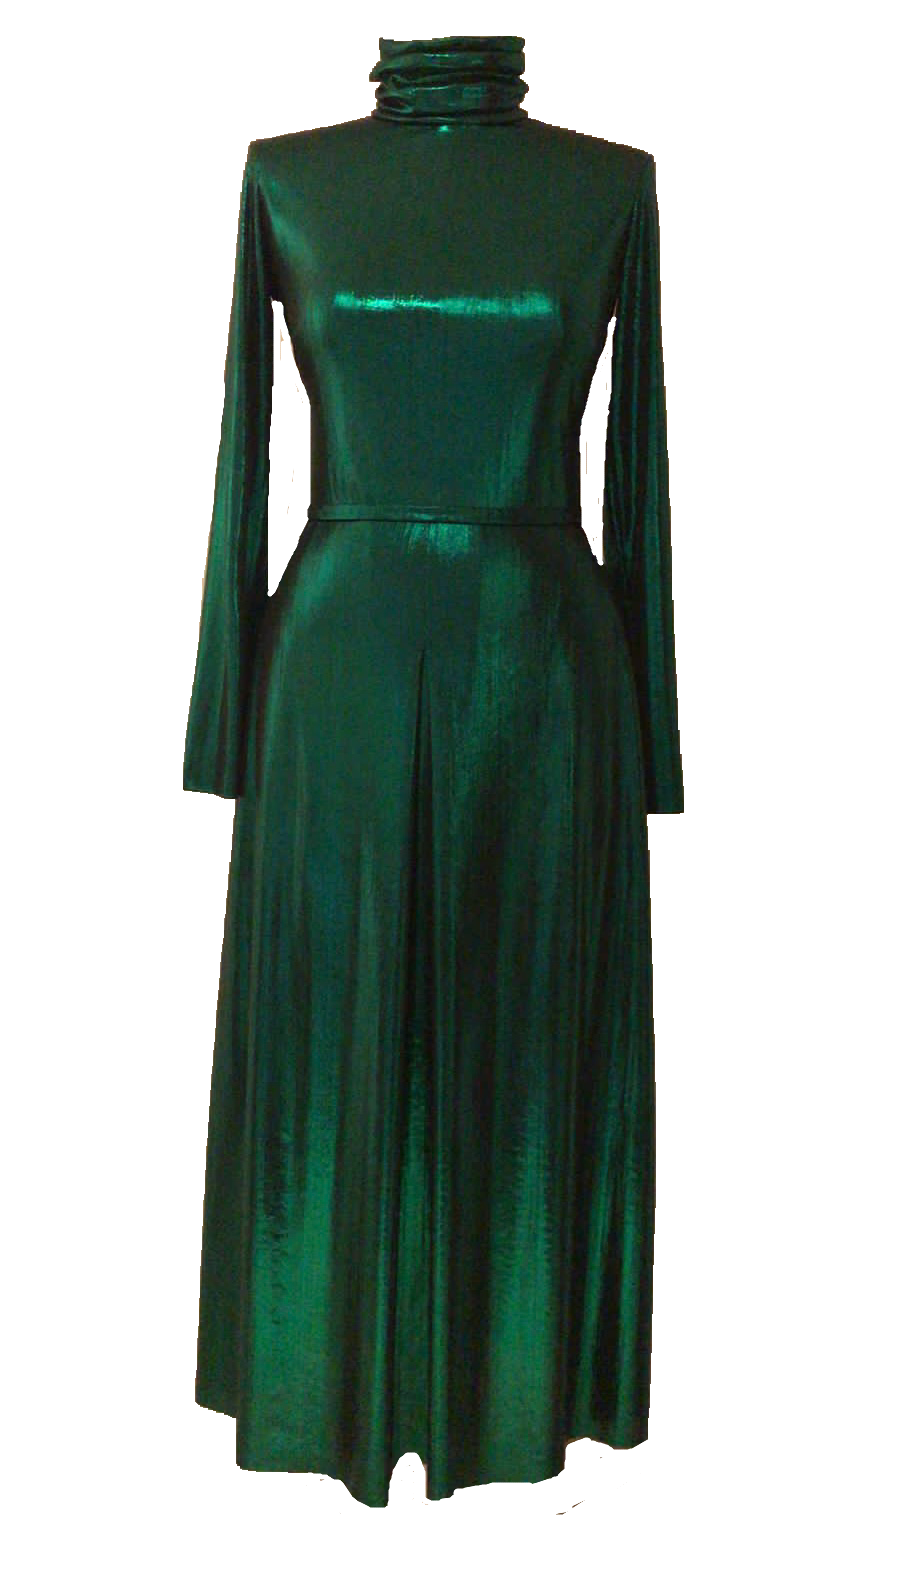 NEW Agnes dress - Metallic green